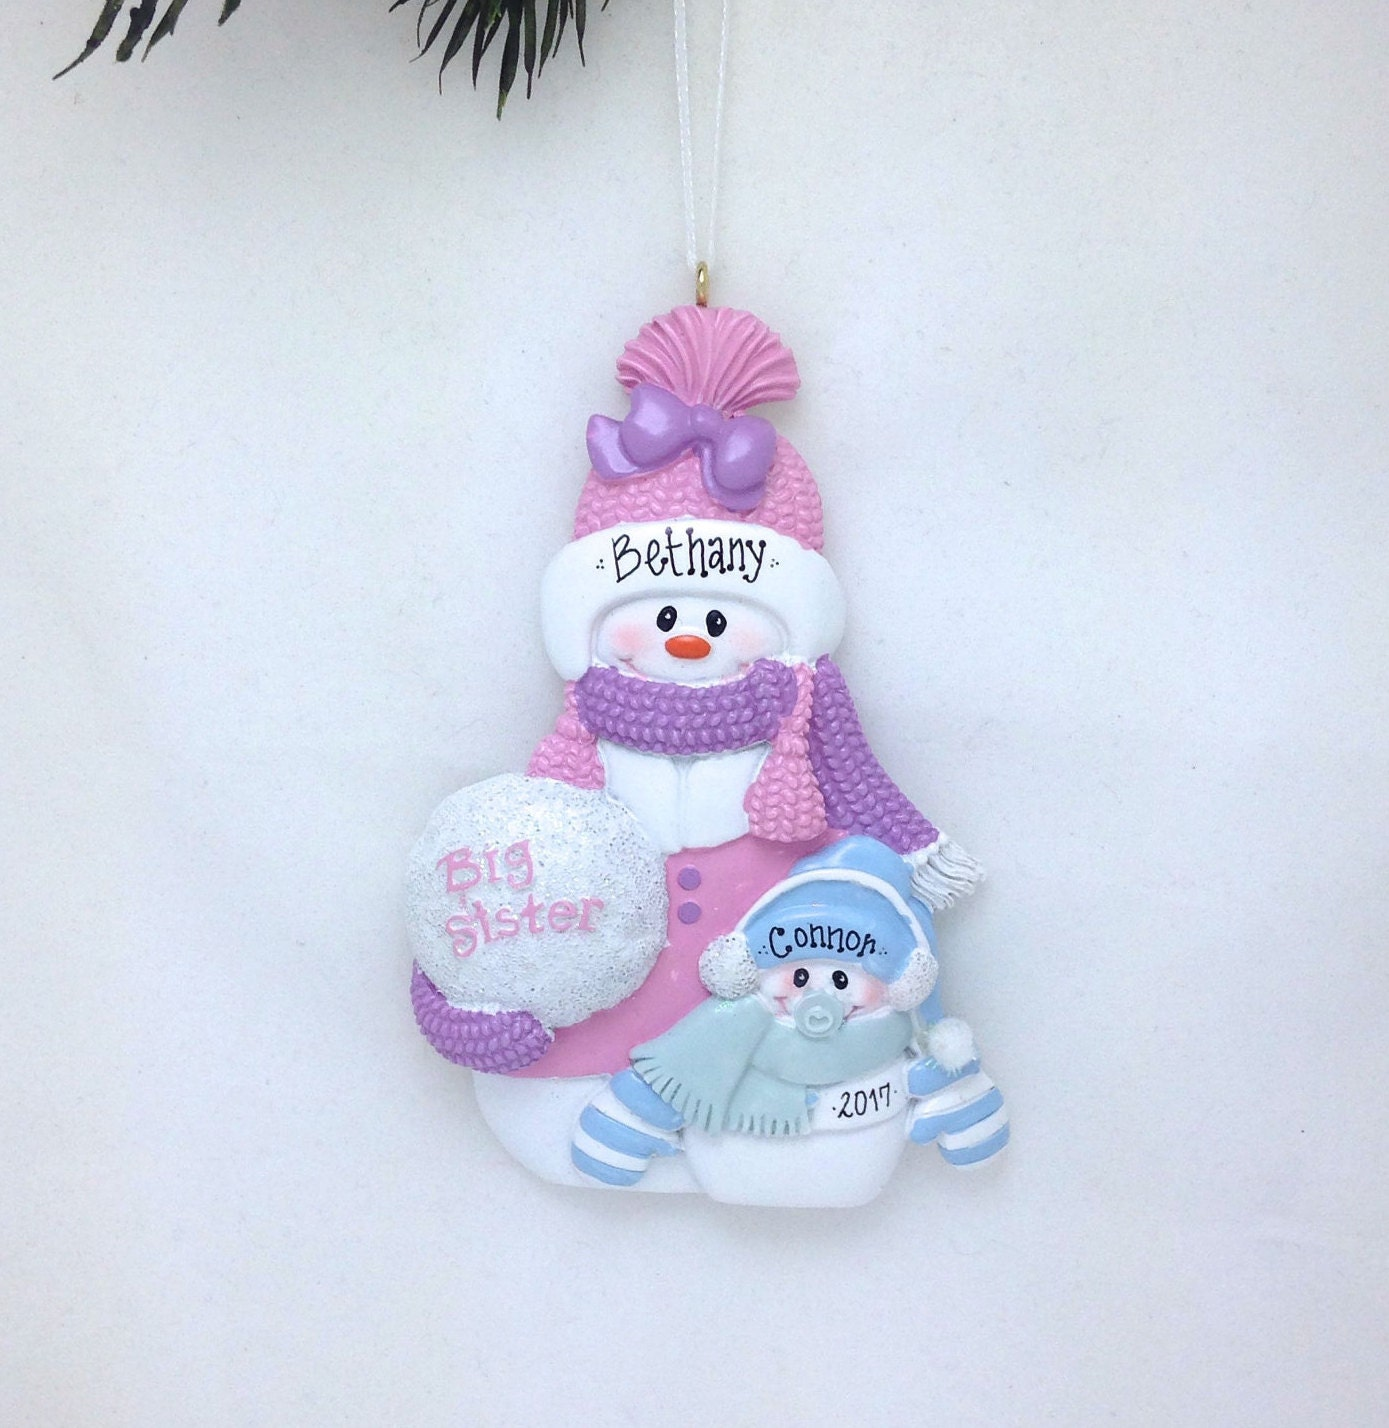 New baby christmas ornament - Free Shipping Big Sister And Little Brother Personalized Christmas Ornament Sibling Ornament Snowman Ornament New Baby Ornament